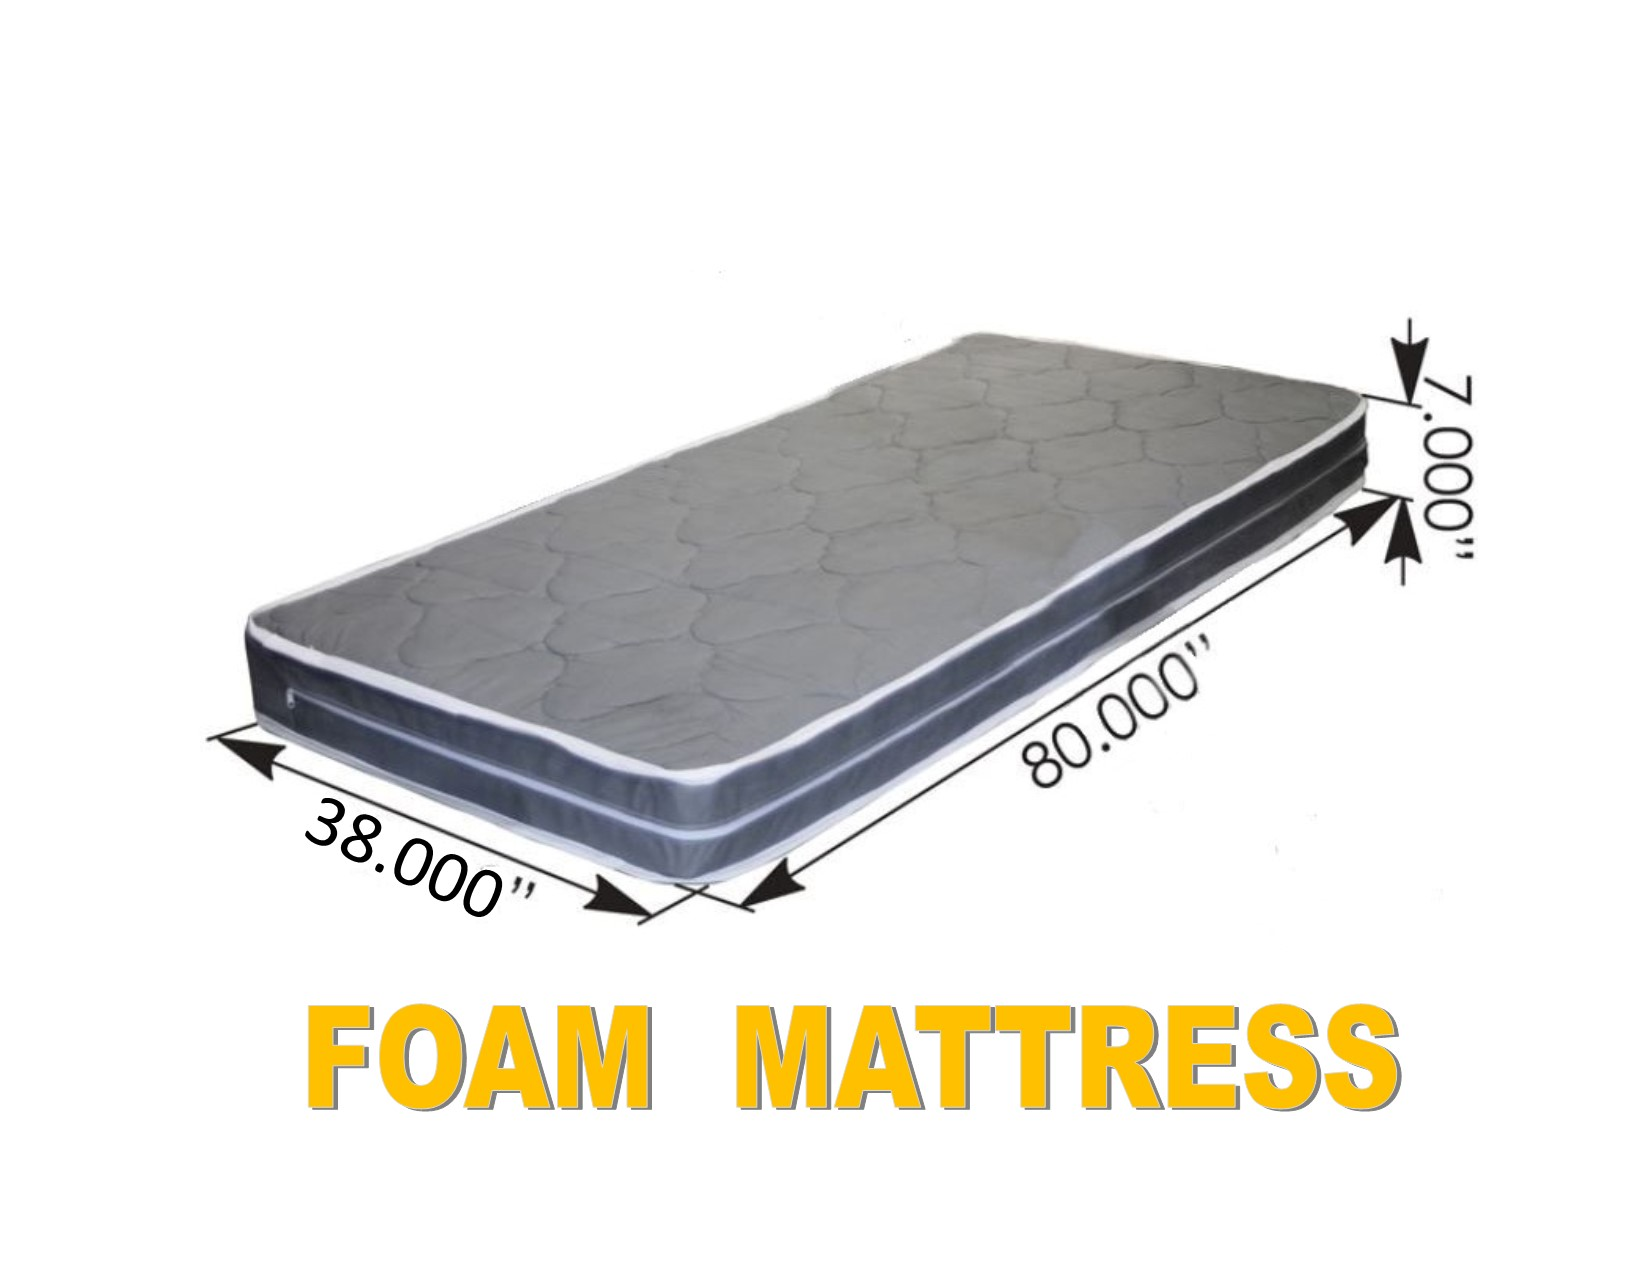 "FOAM MATTRESS (38"" x 80"" x 7"")Semi Truck Sleeper Cab Bed RV"